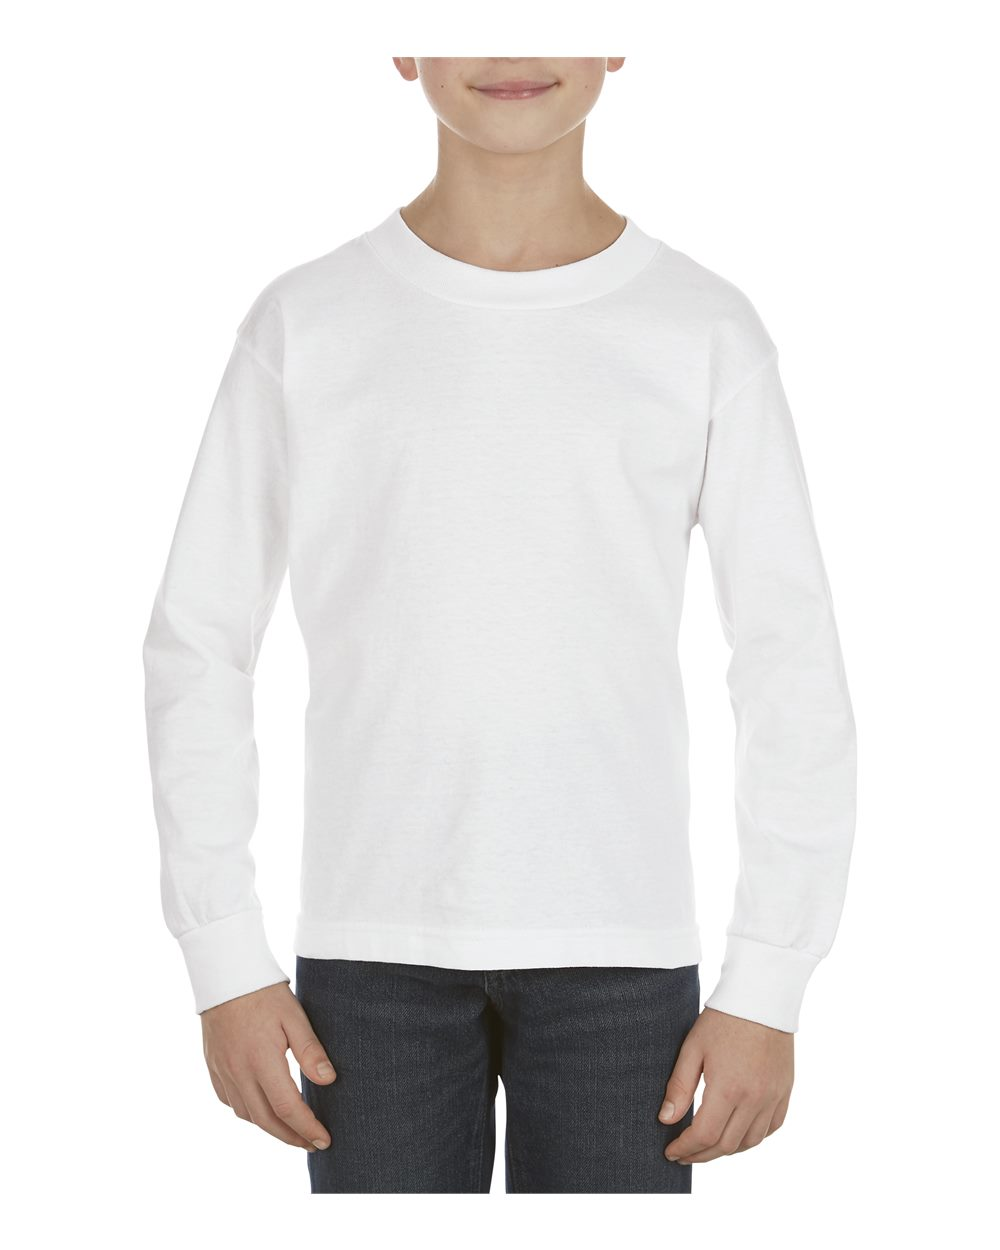 Alstyle 3384 - Classic Youth Long Sleeve Tee